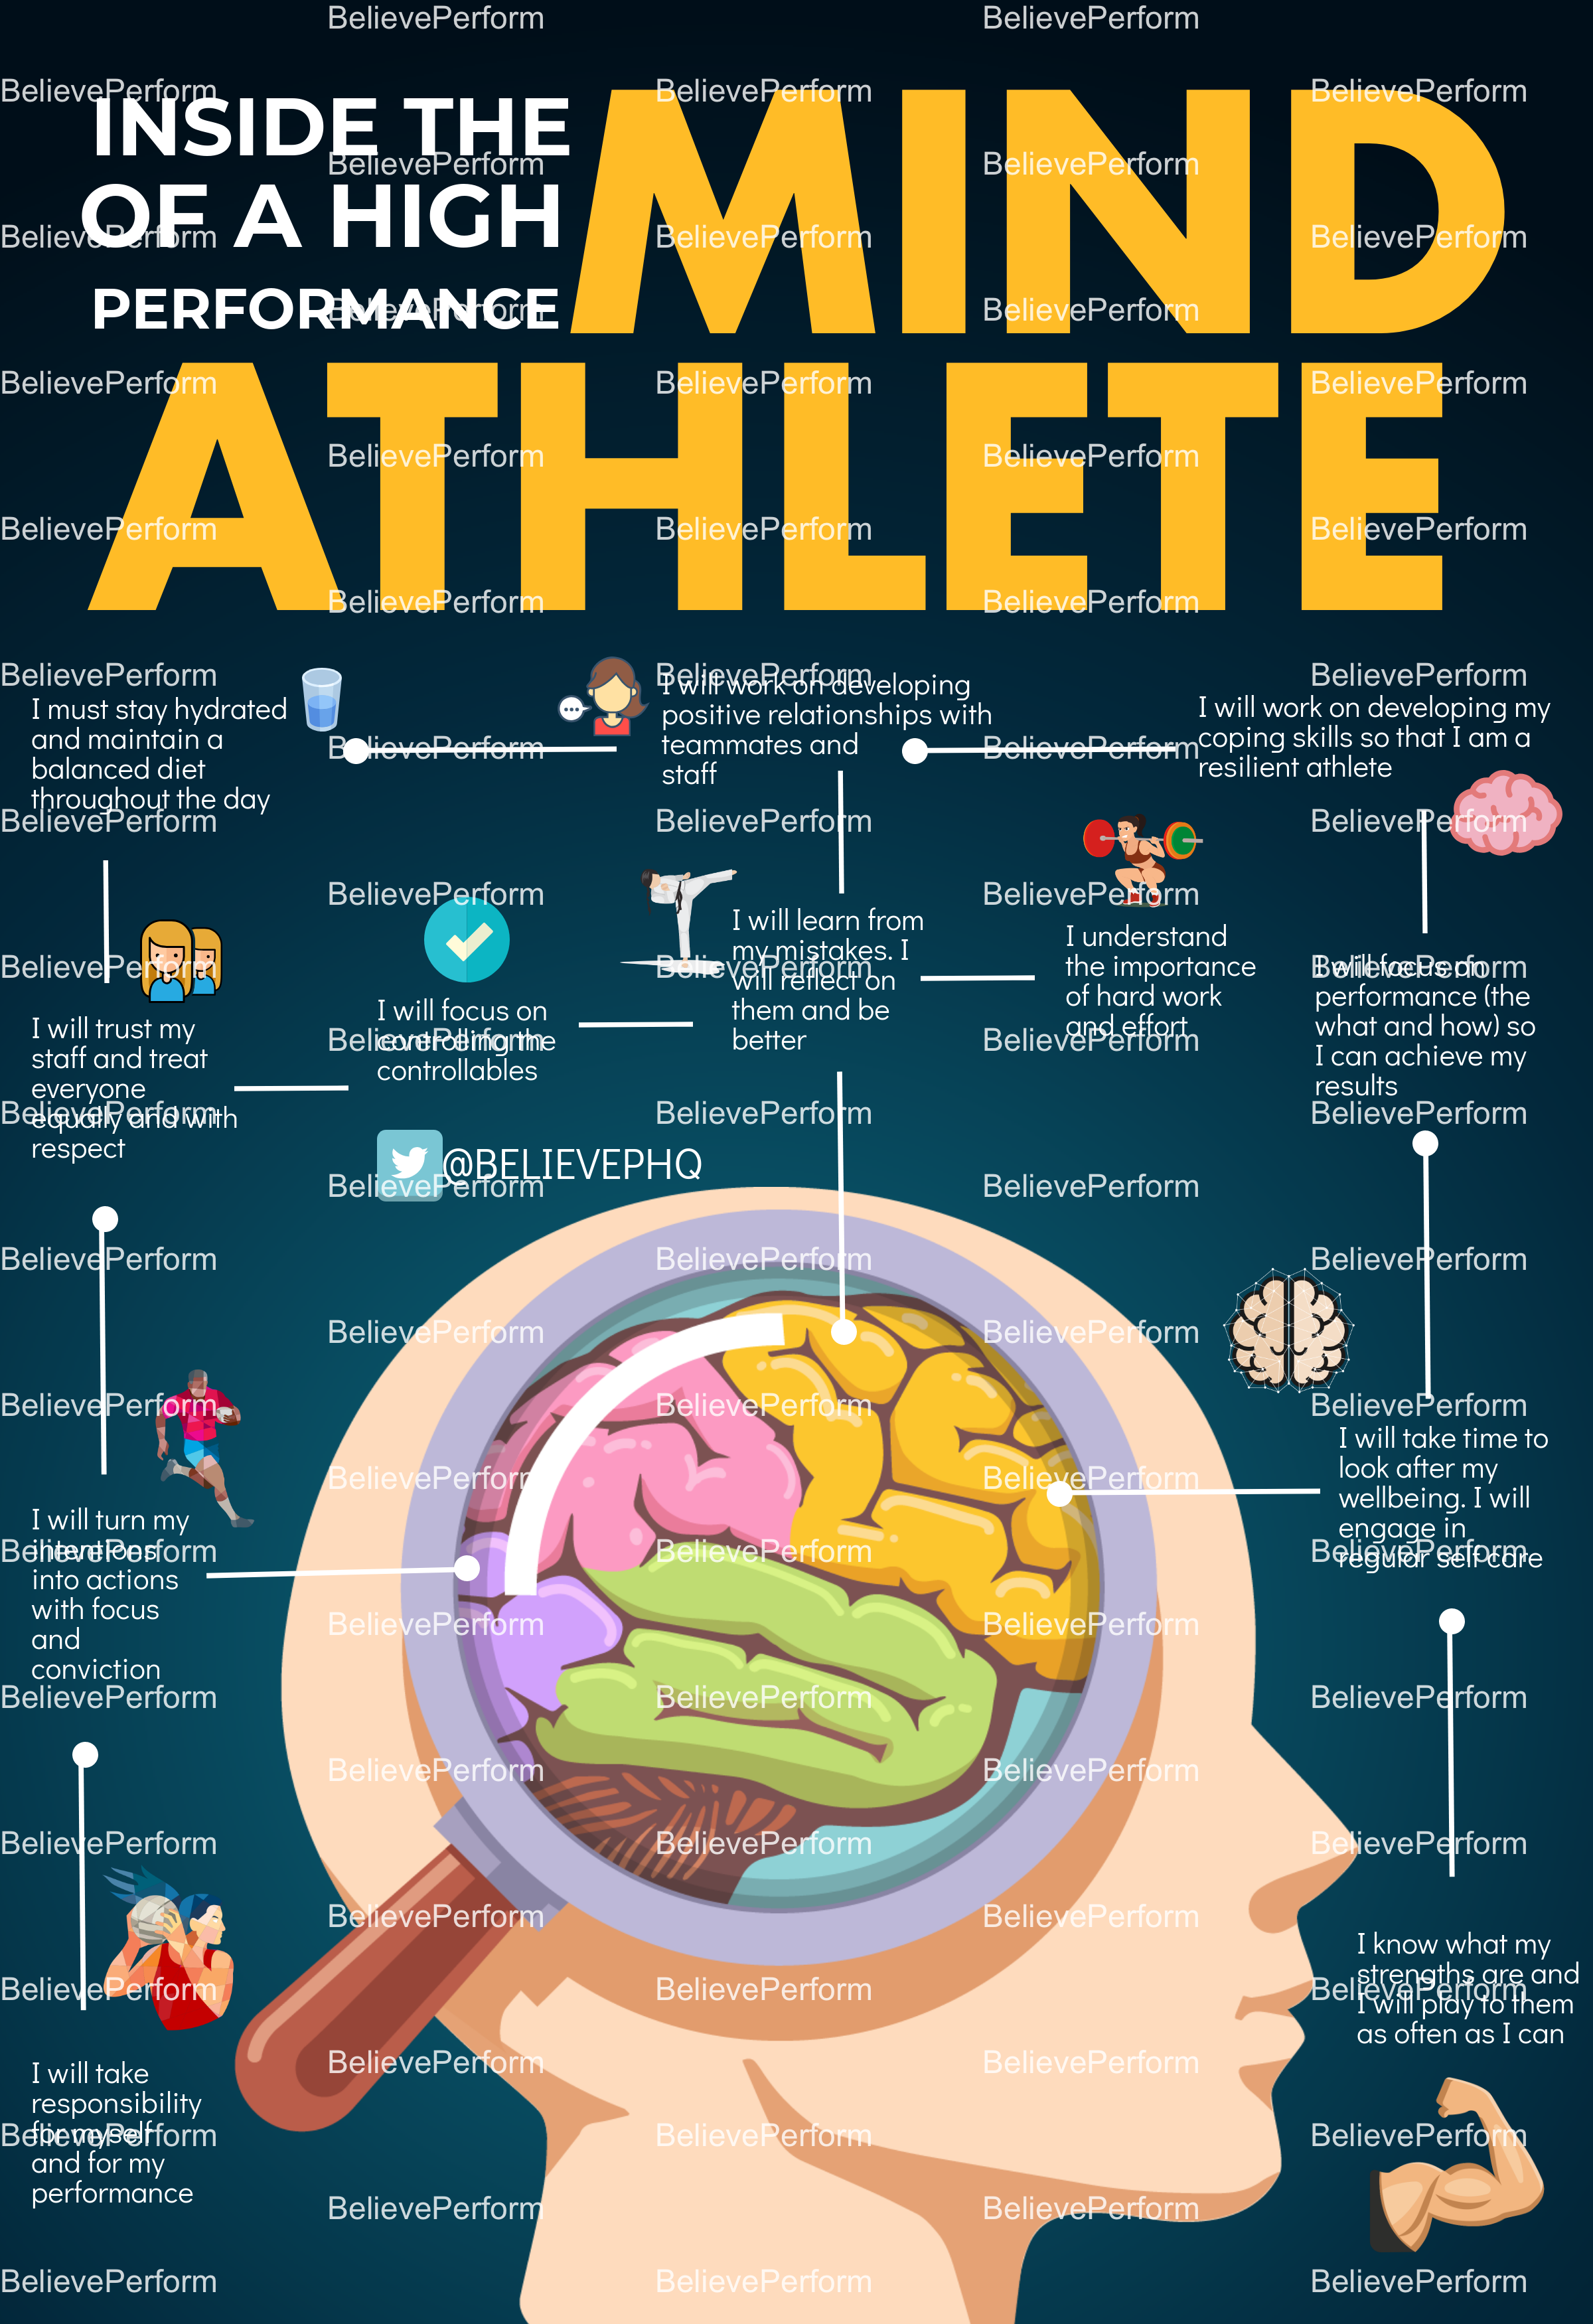 Inside the mind of a high performance athlete